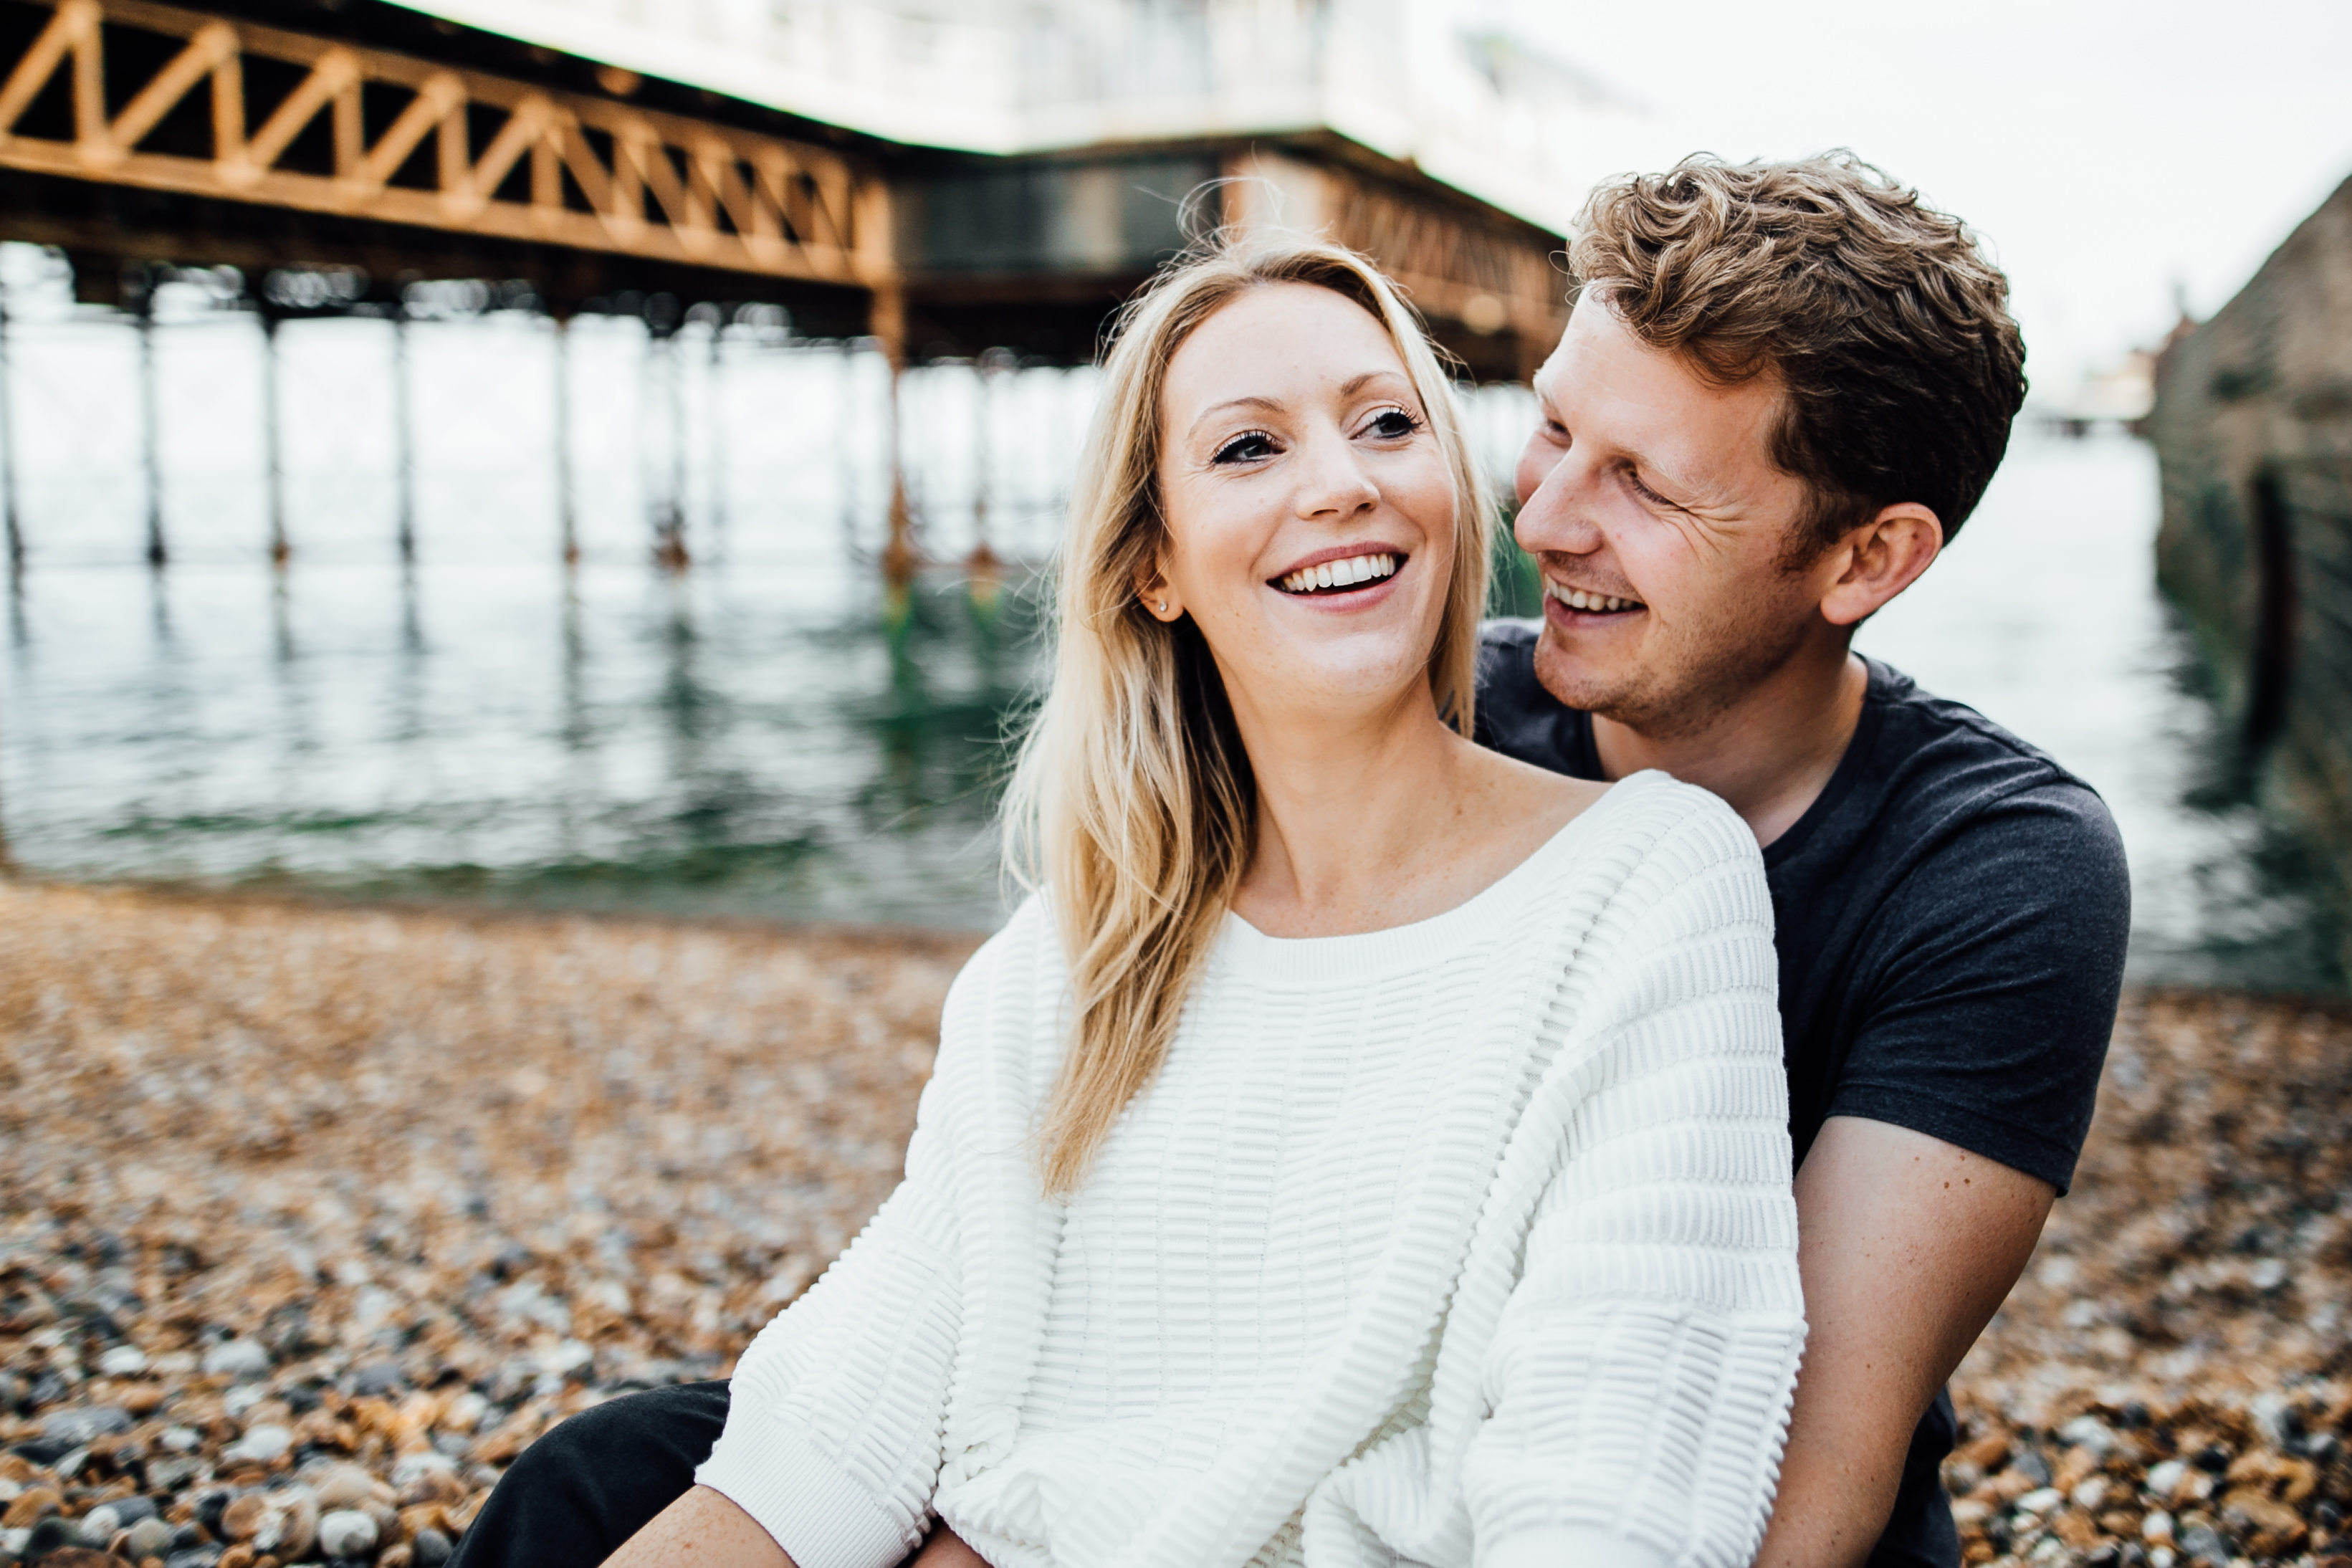 wedding photography brighton beach and pier engagement shoot